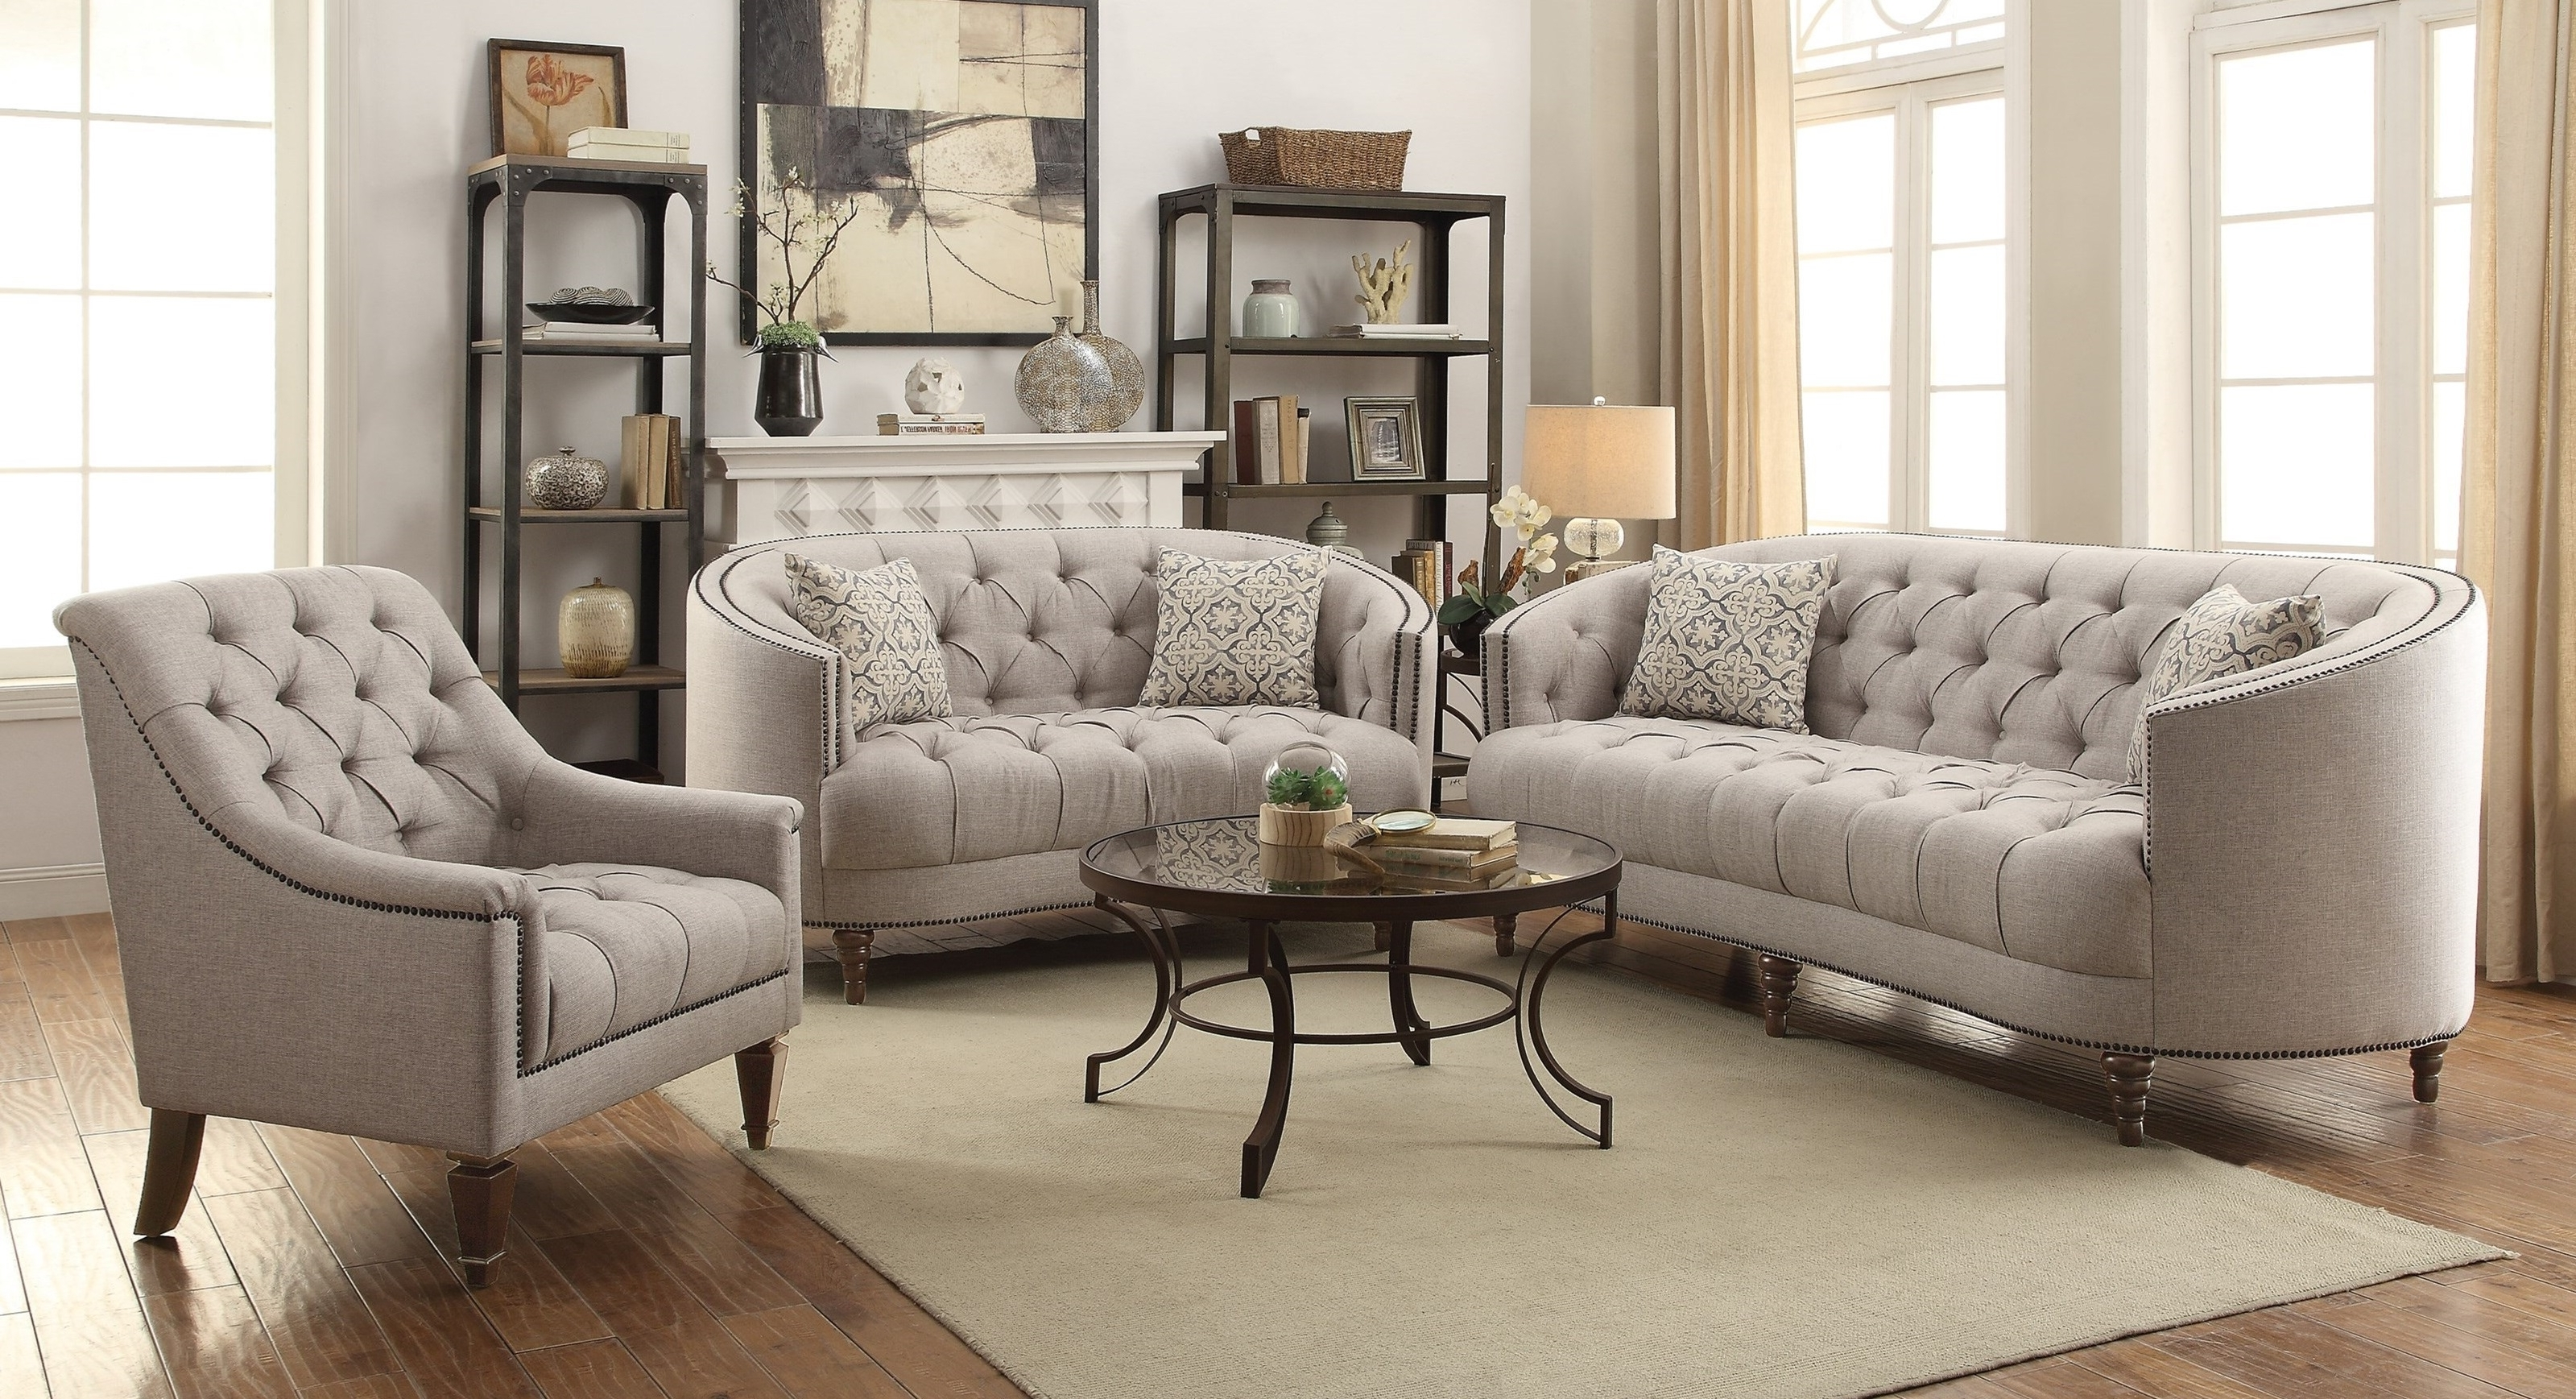 2019 C Shaped Sofas In Avonlea Sofa And Chair Set – (View 5 of 20)